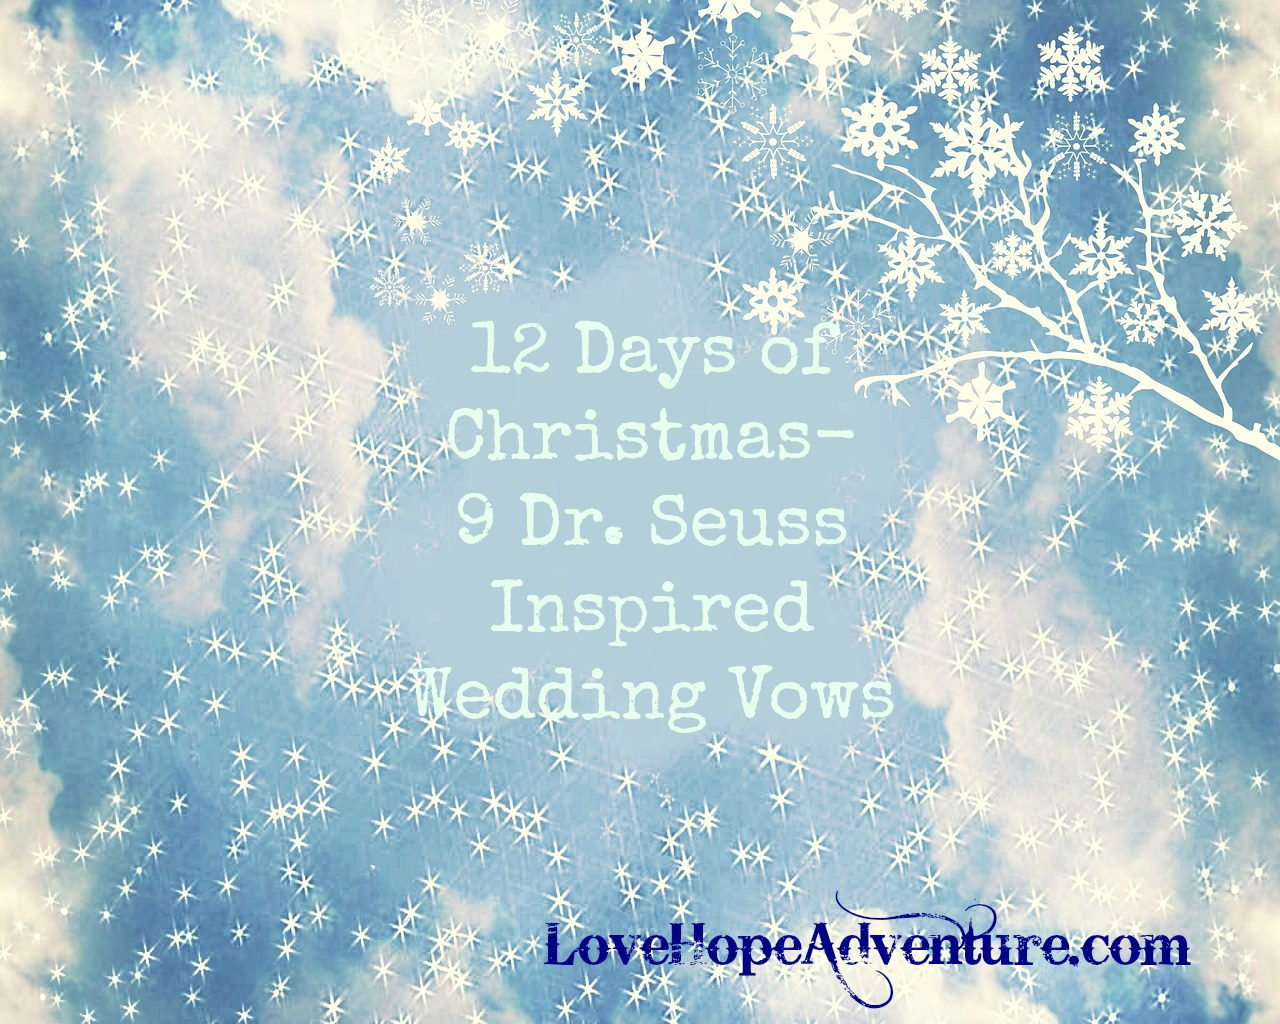 12 Days of Christmas 9 Dr. Seuss inspired wedding vows